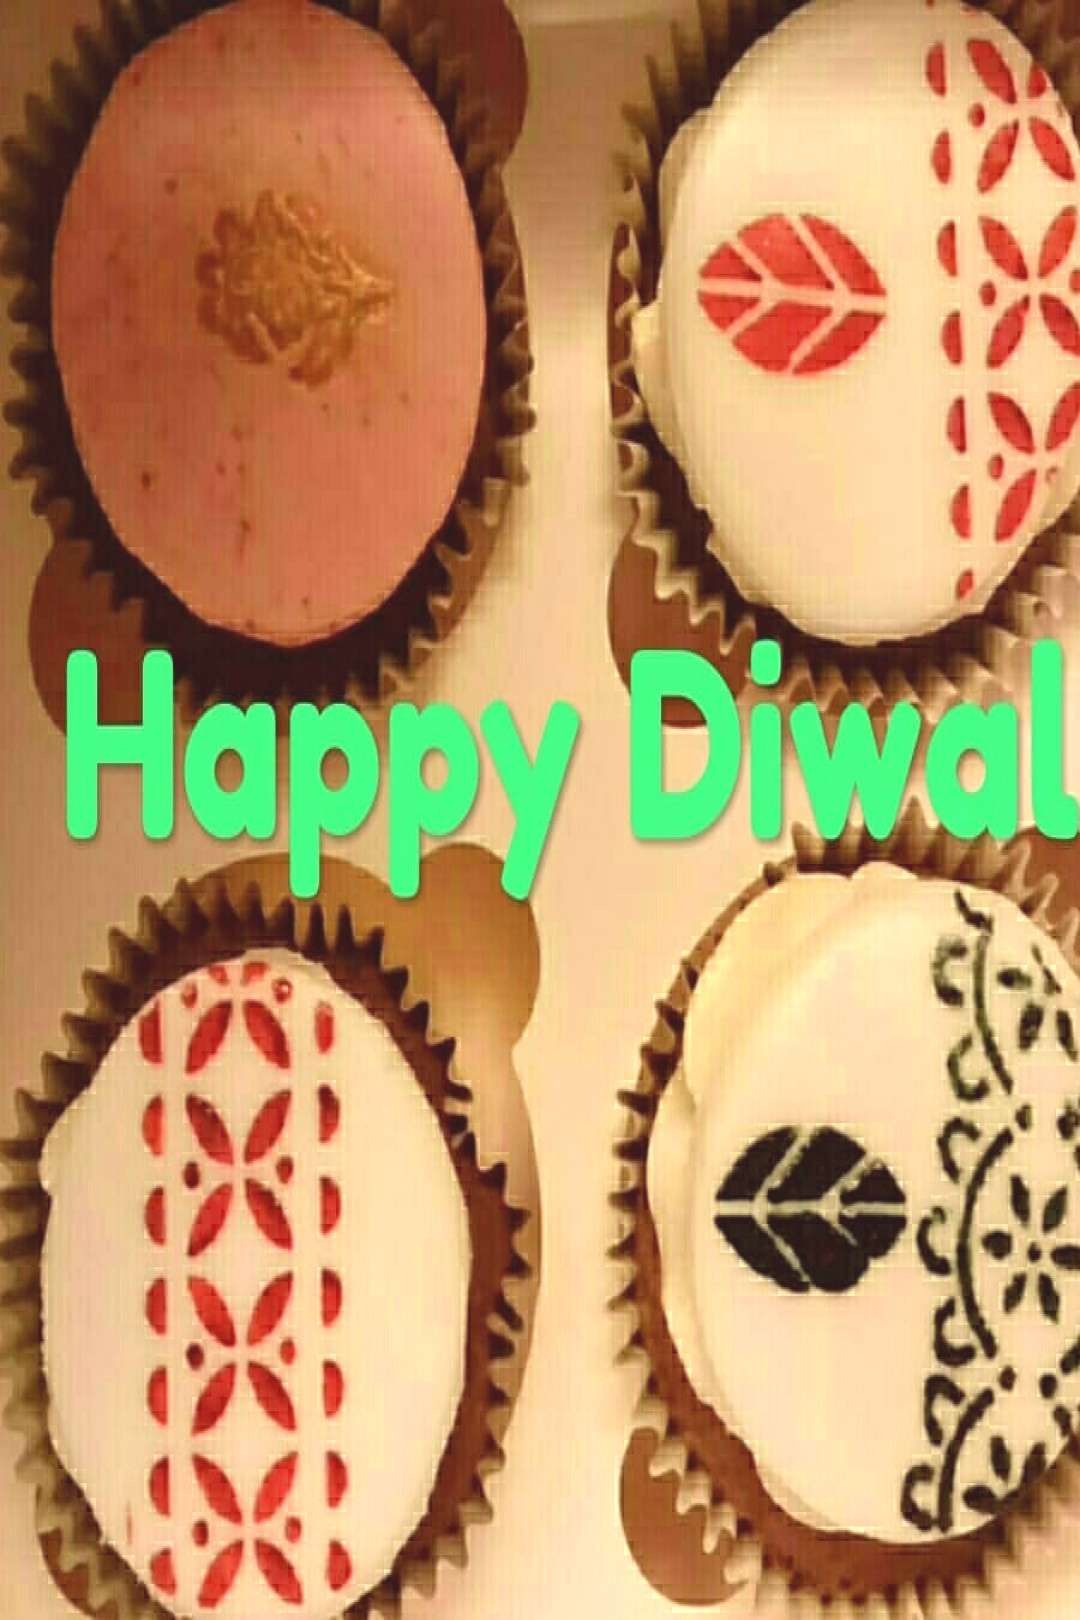 Festive Cupcakes!! Traditional designs for the festival of Diwali